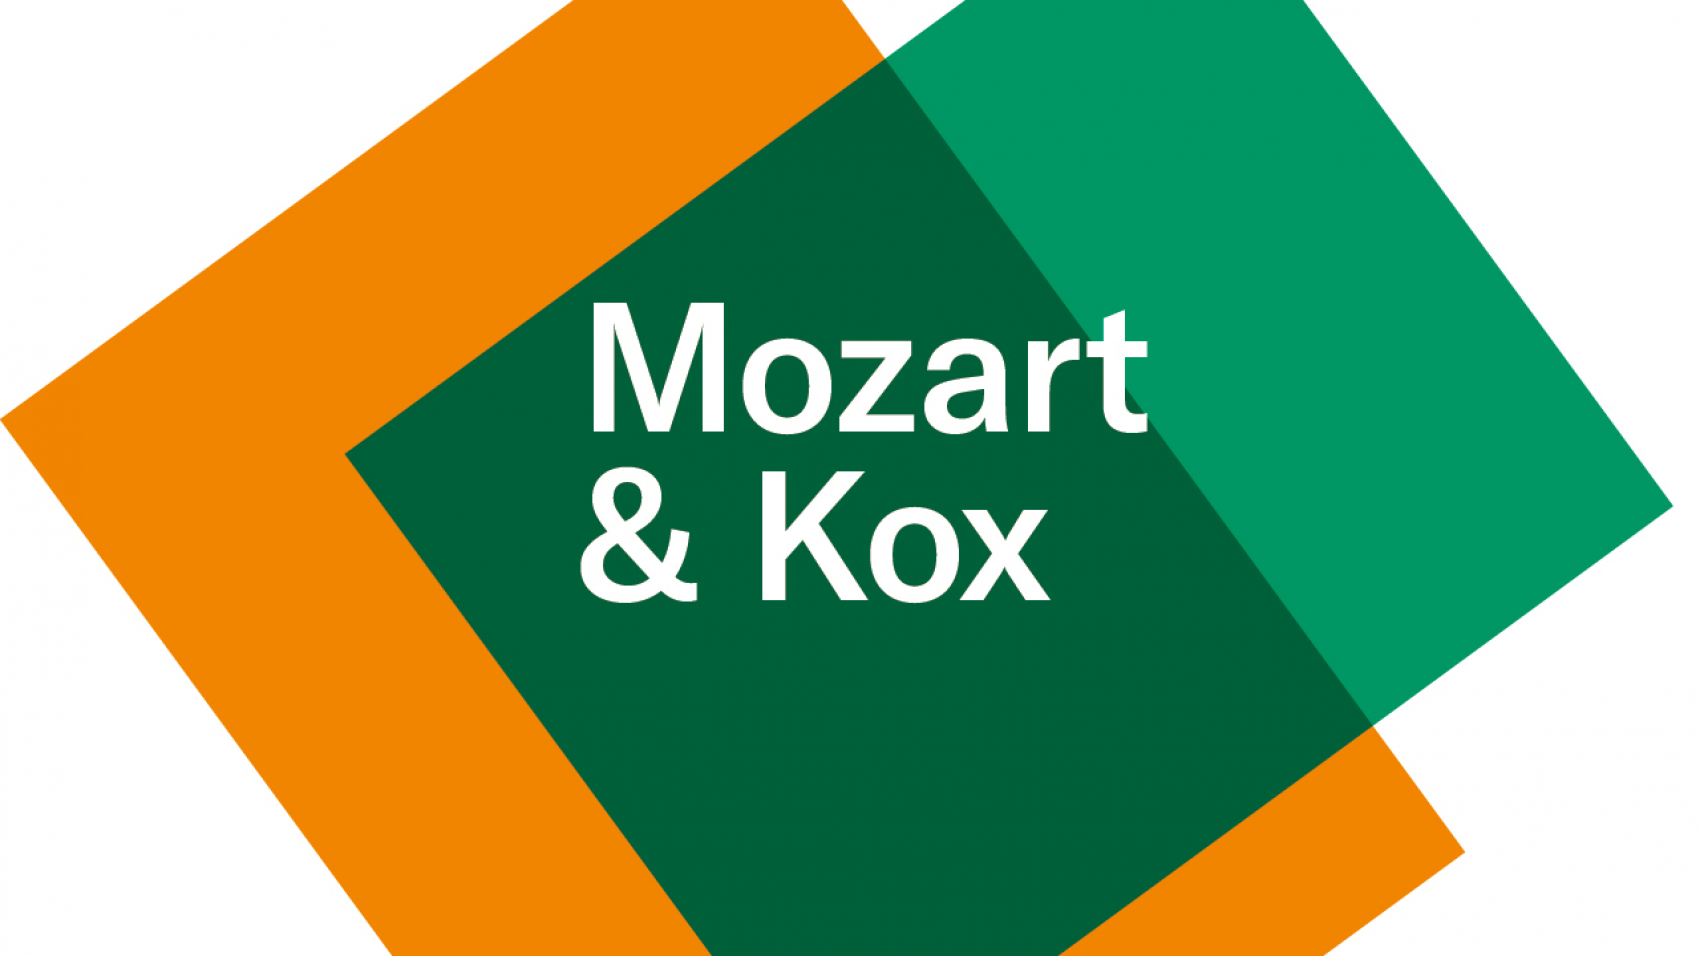 Concert stream: the Netherlands Chamber Orchestra plays Mozart